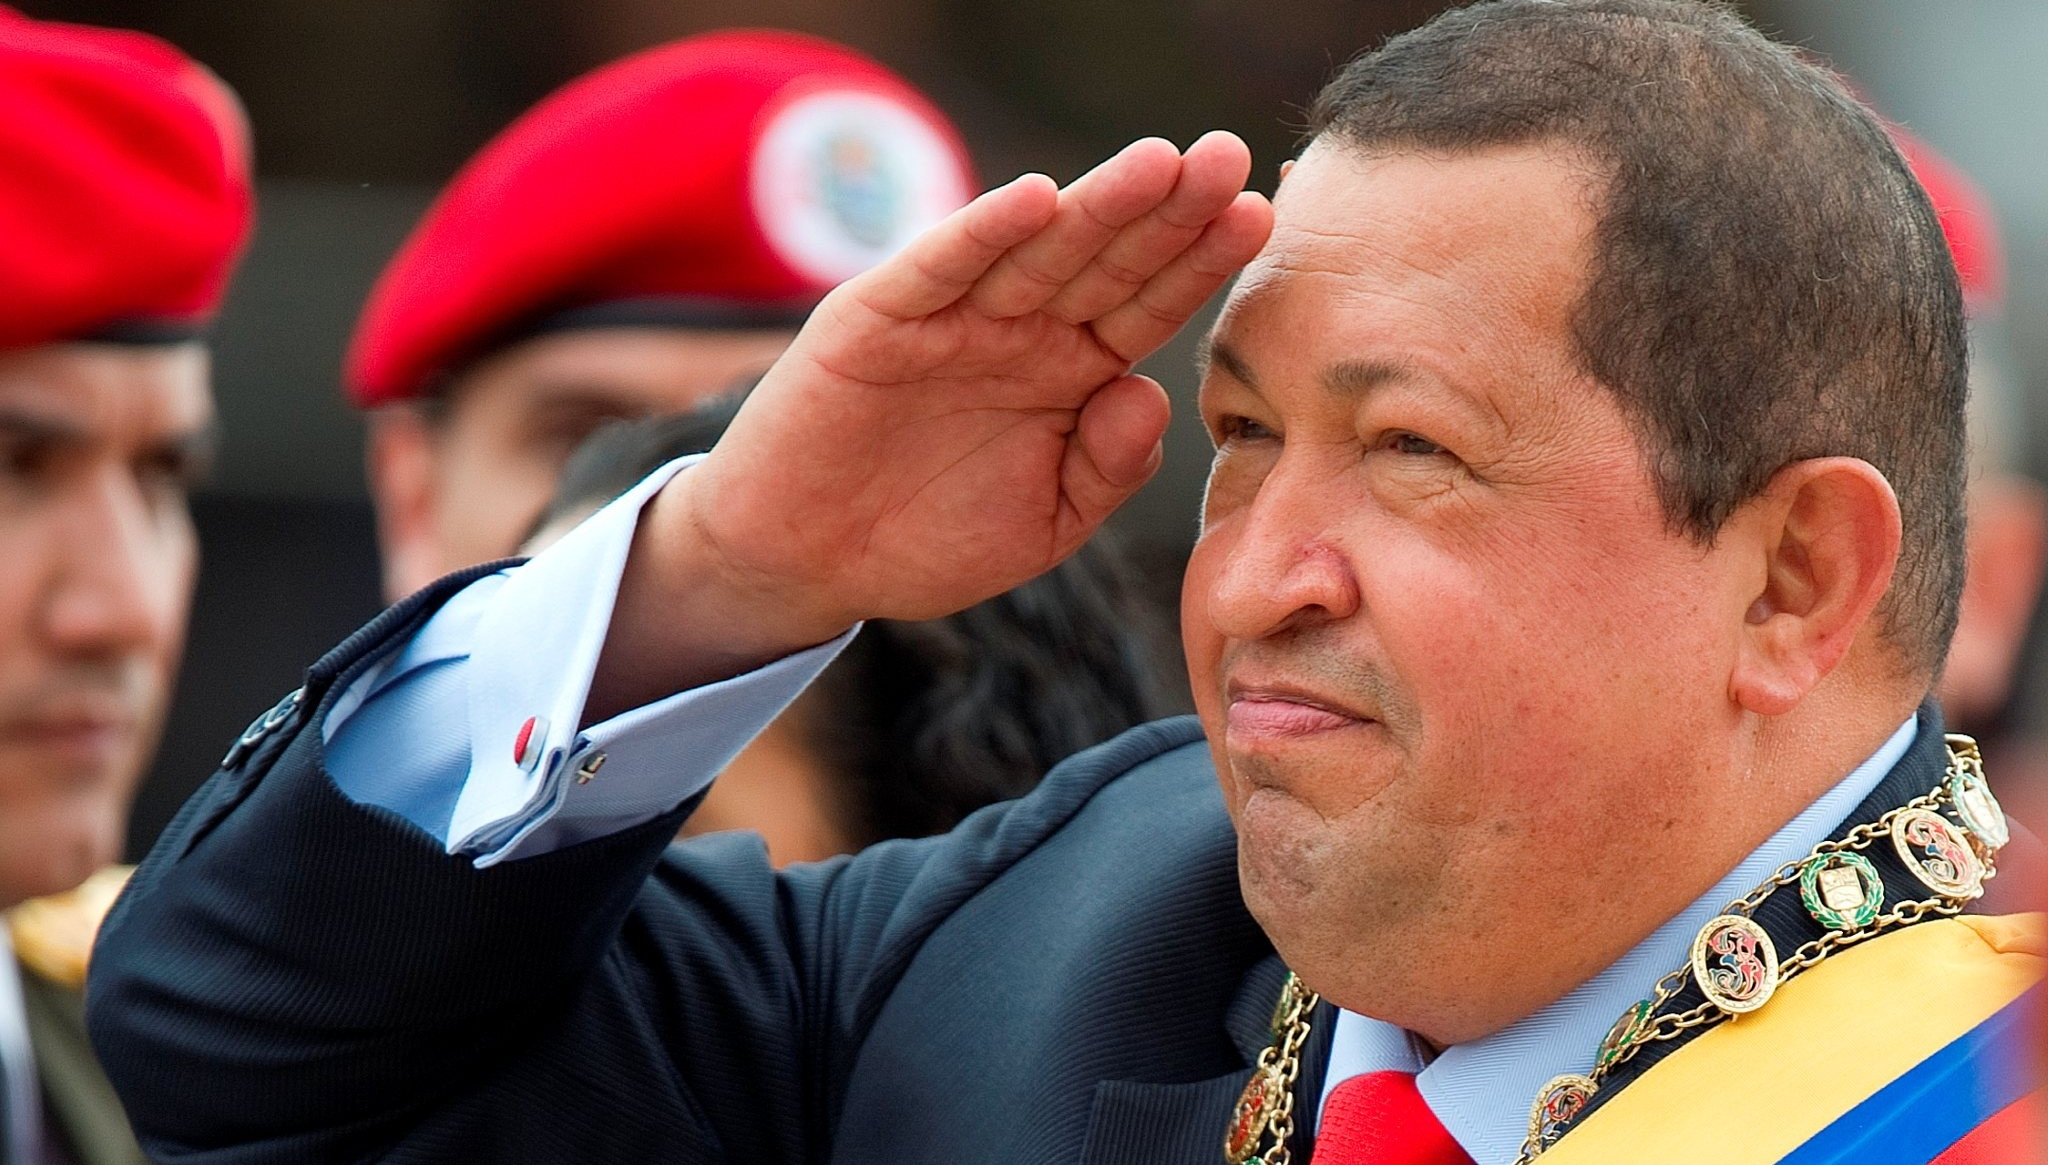 Venezuelan President Hugo Chavez salutes during a military parade to commemorate the 20th anniversary of his failed coup attempt, on February 4, 2012, in Caracas.    AFP PHOTO/JUAN BARRETO